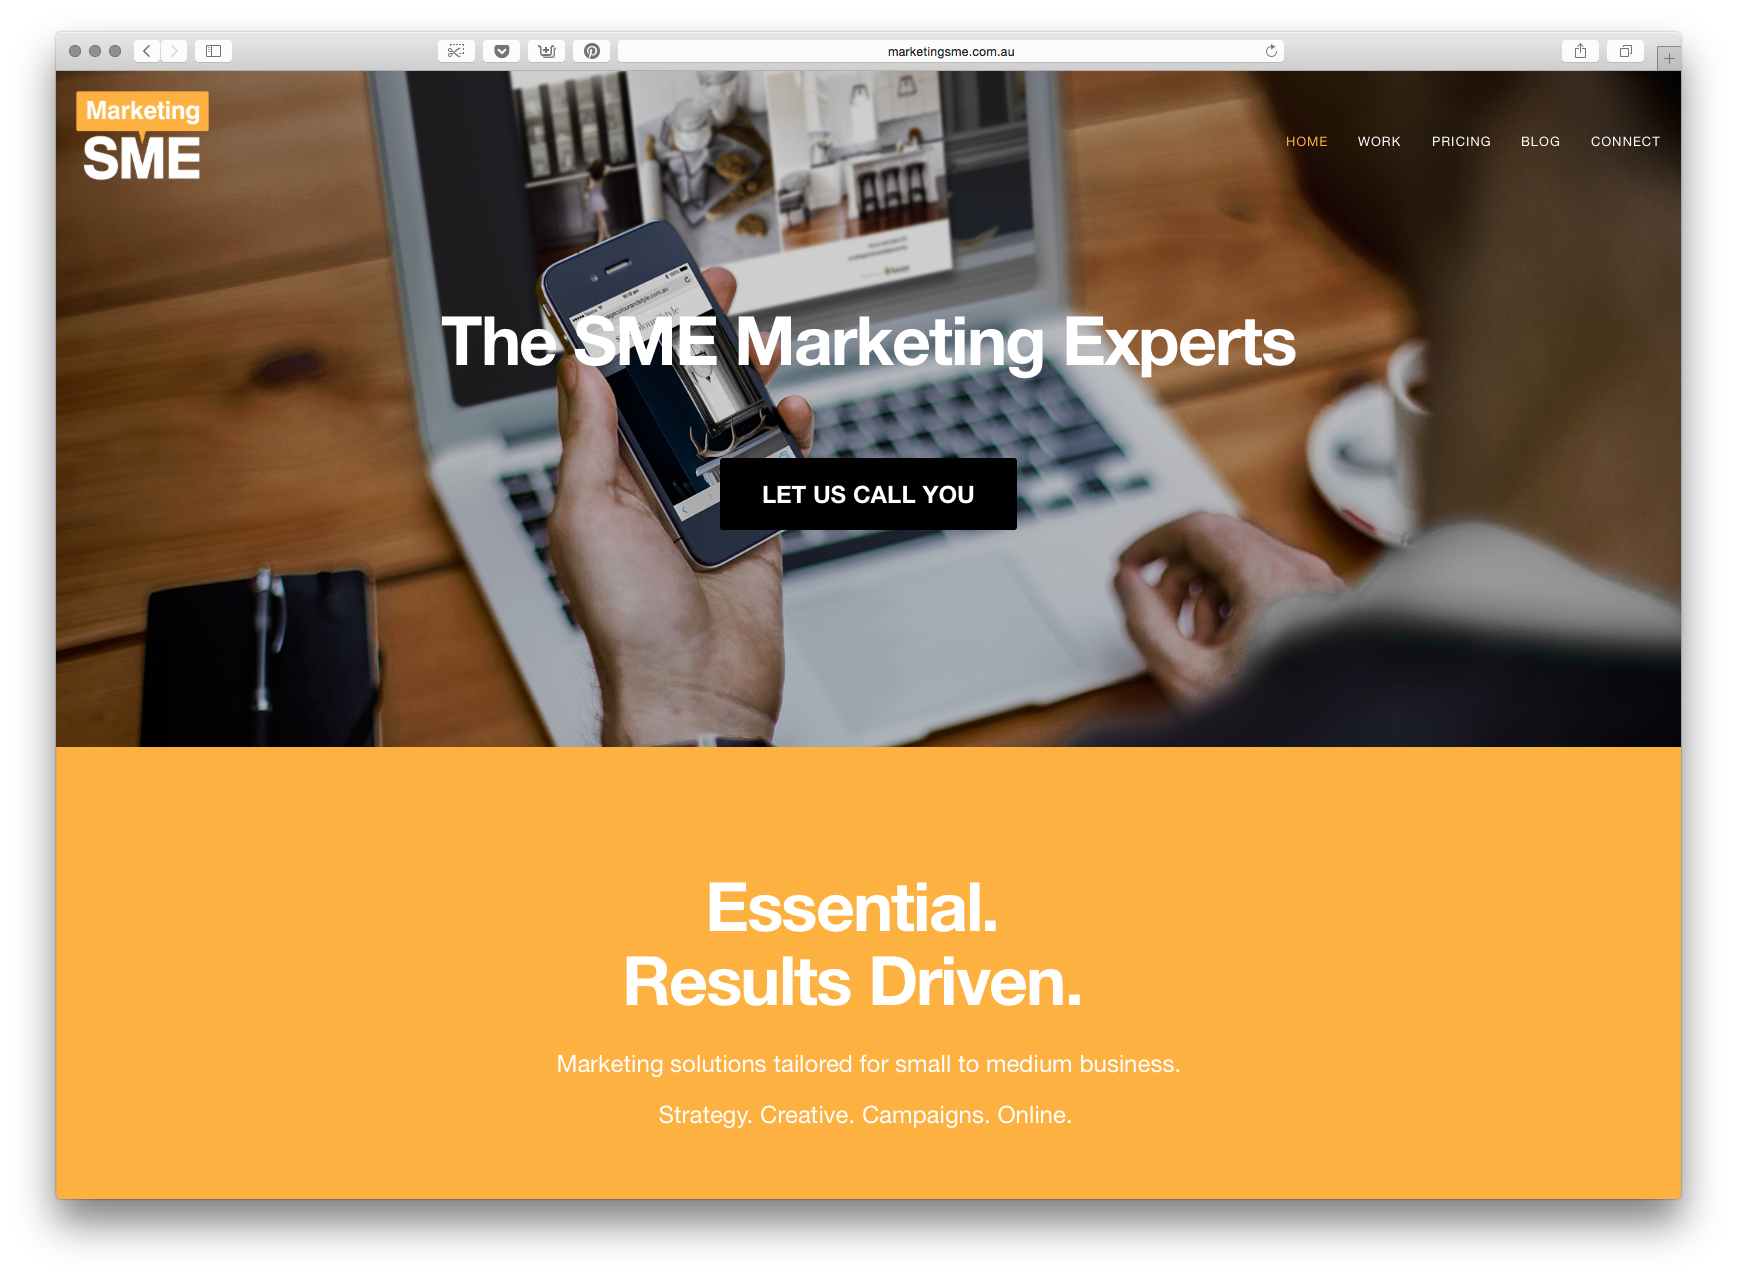 Mind Methods small business marketing website is launched, called Marketing SME